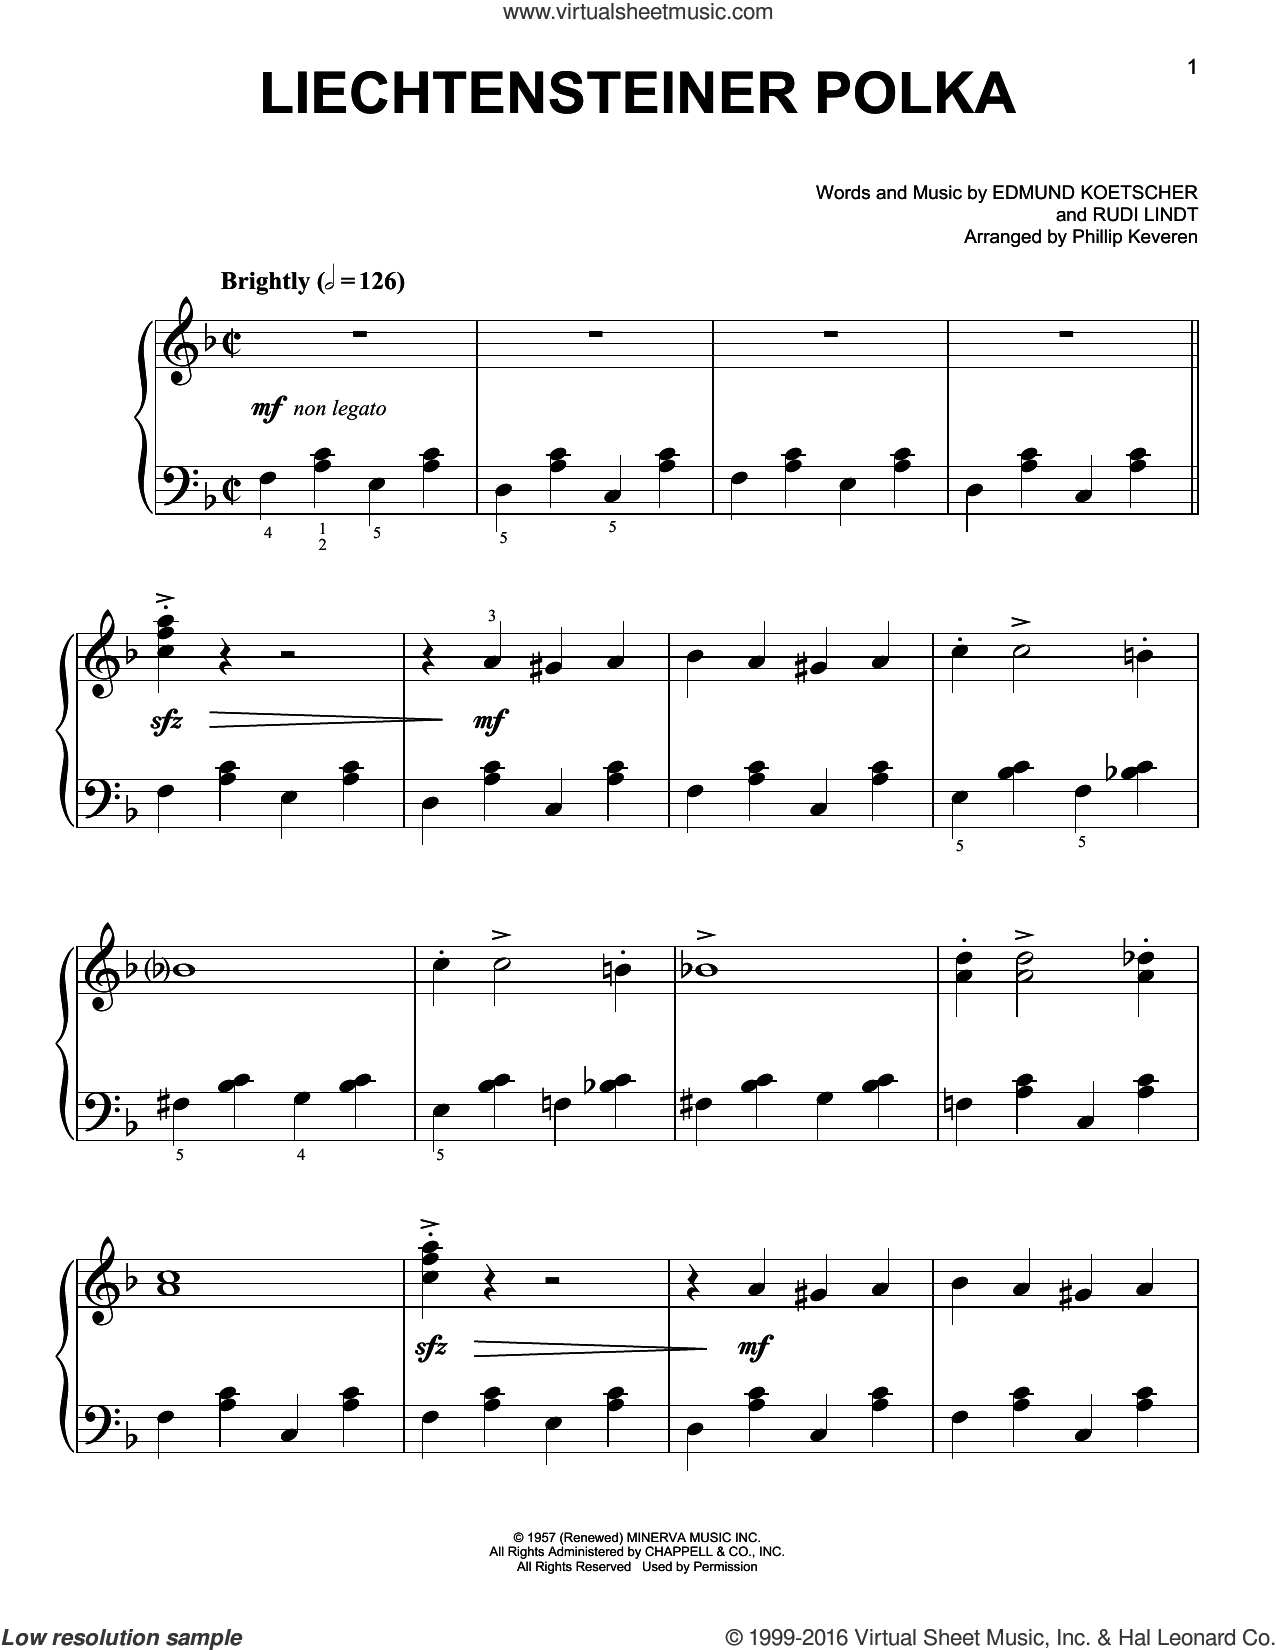 Liechtensteiner Polka sheet music for piano solo by Rudi Lindt, Phillip Keveren and Miscellaneous. Score Image Preview.